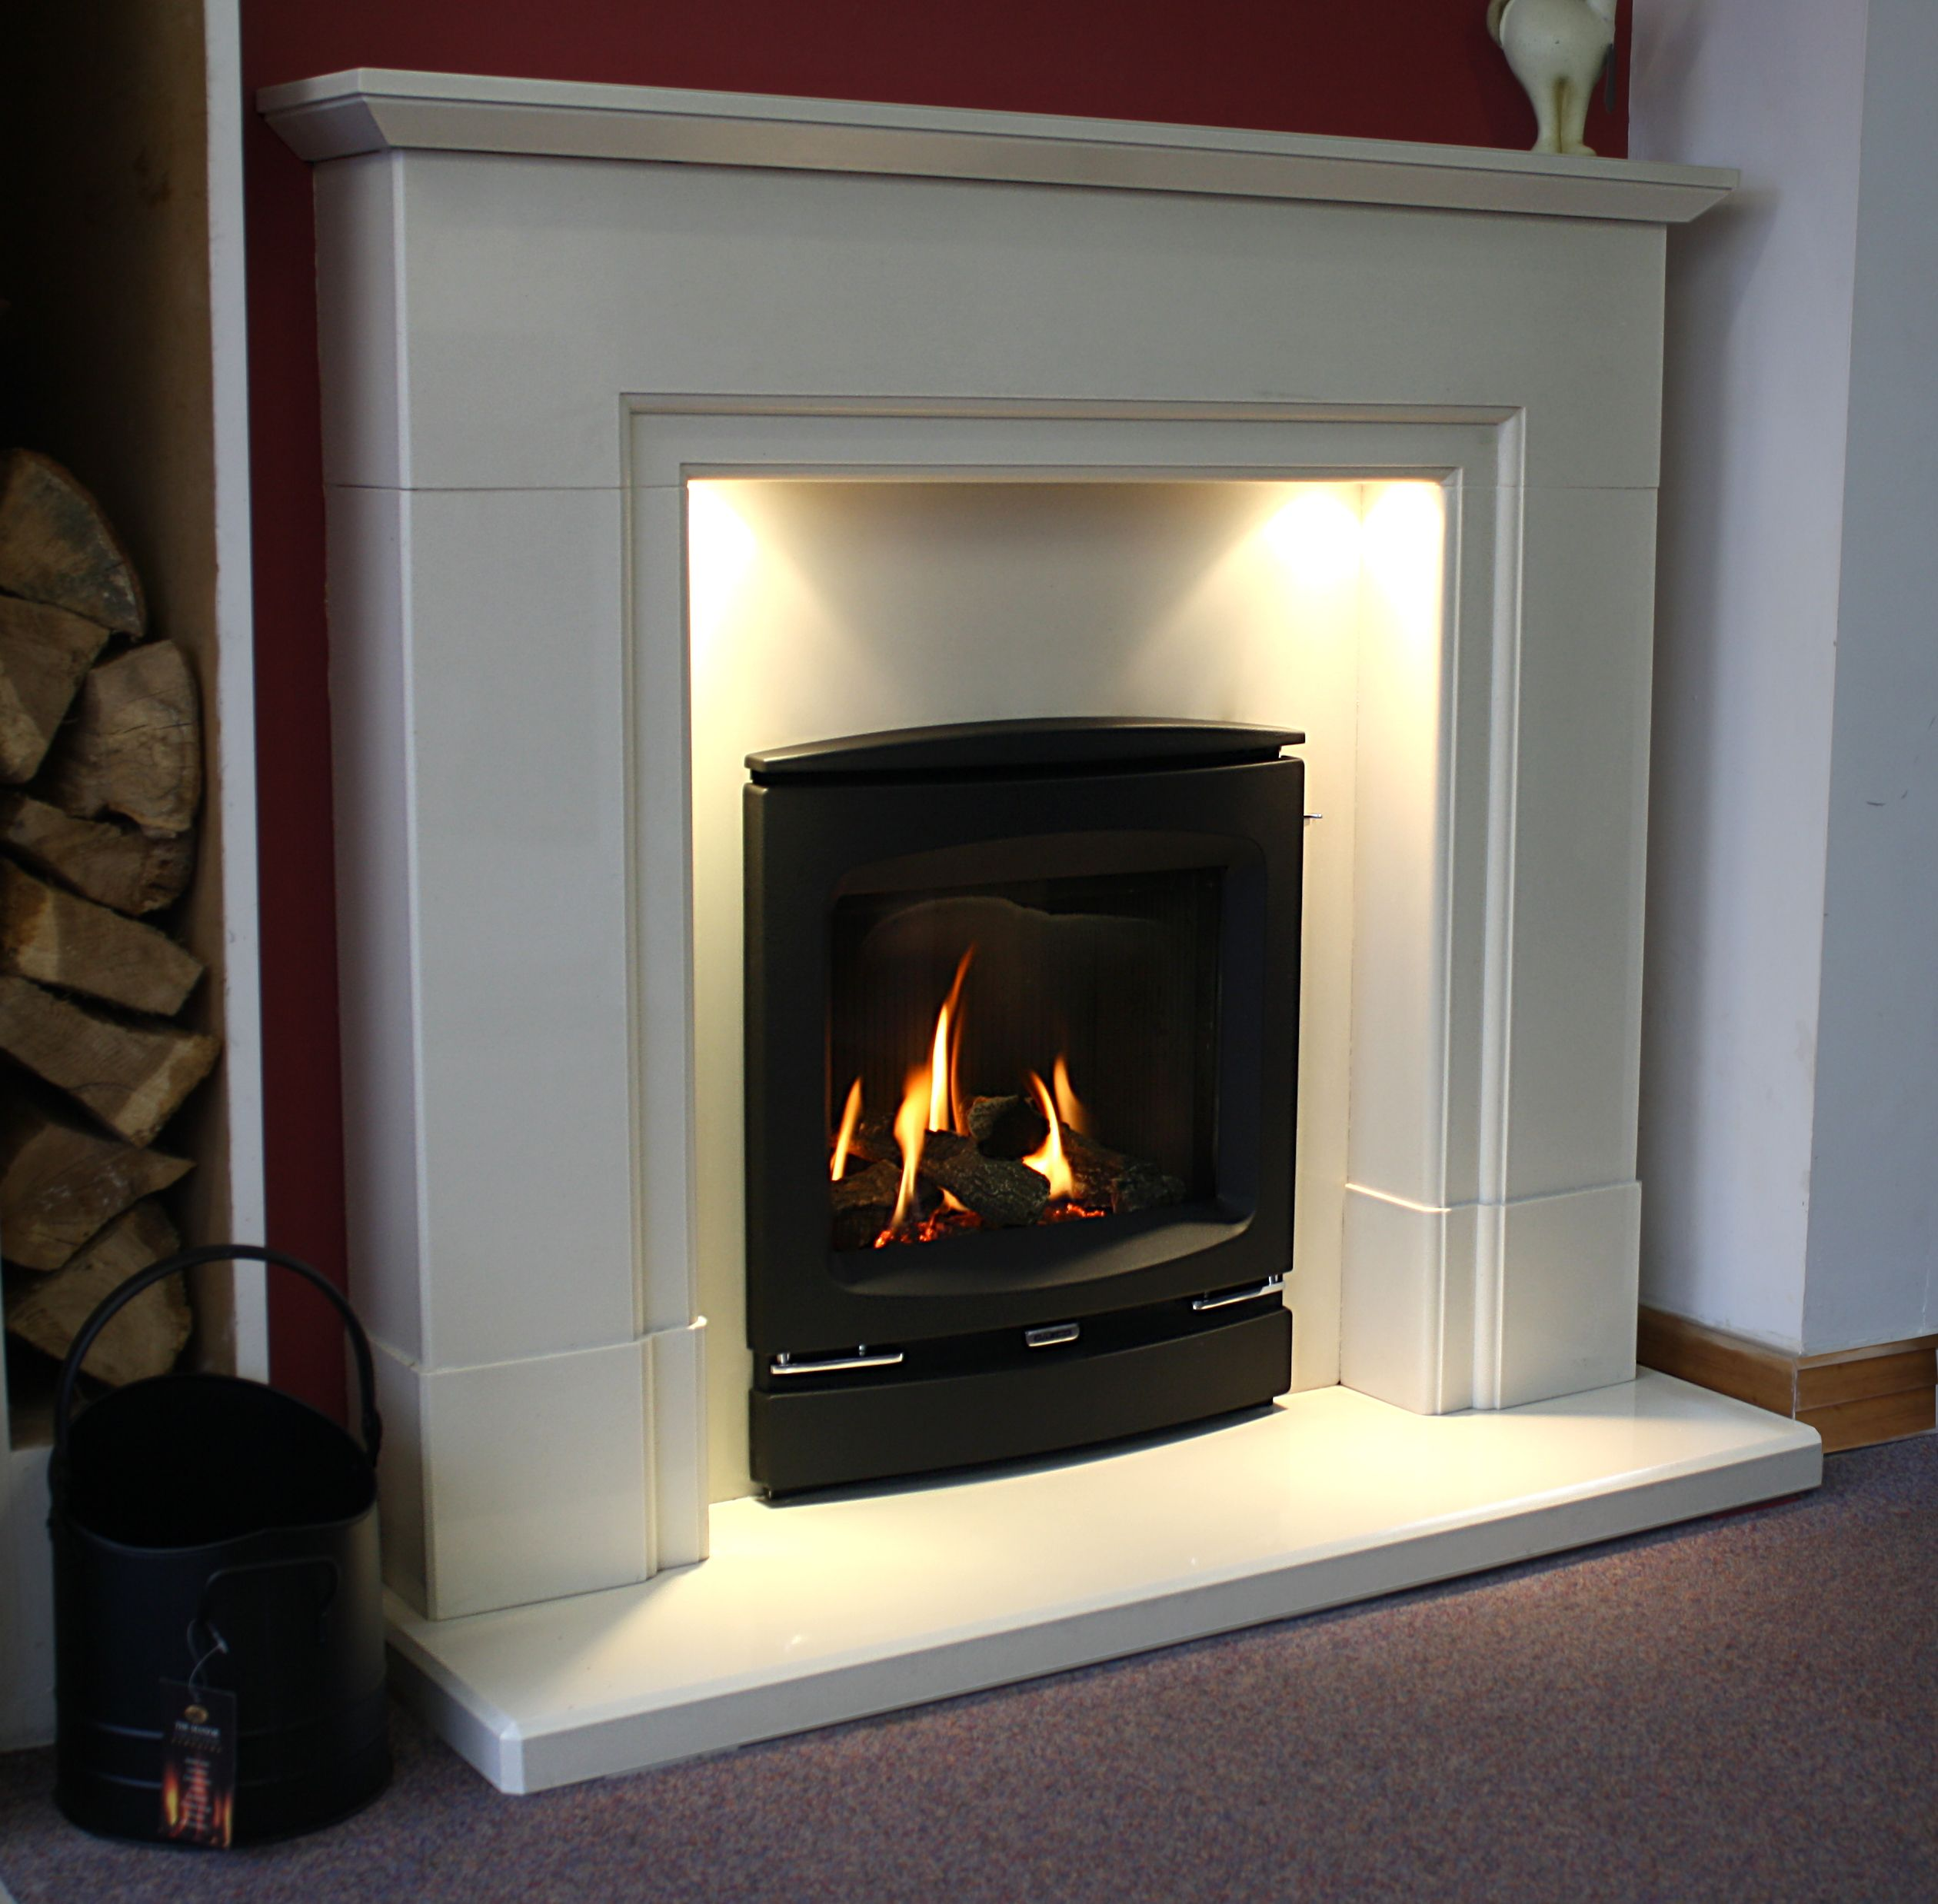 Showroom Fire Of The Day The Gazco Logic He Inset Log Effect Gas